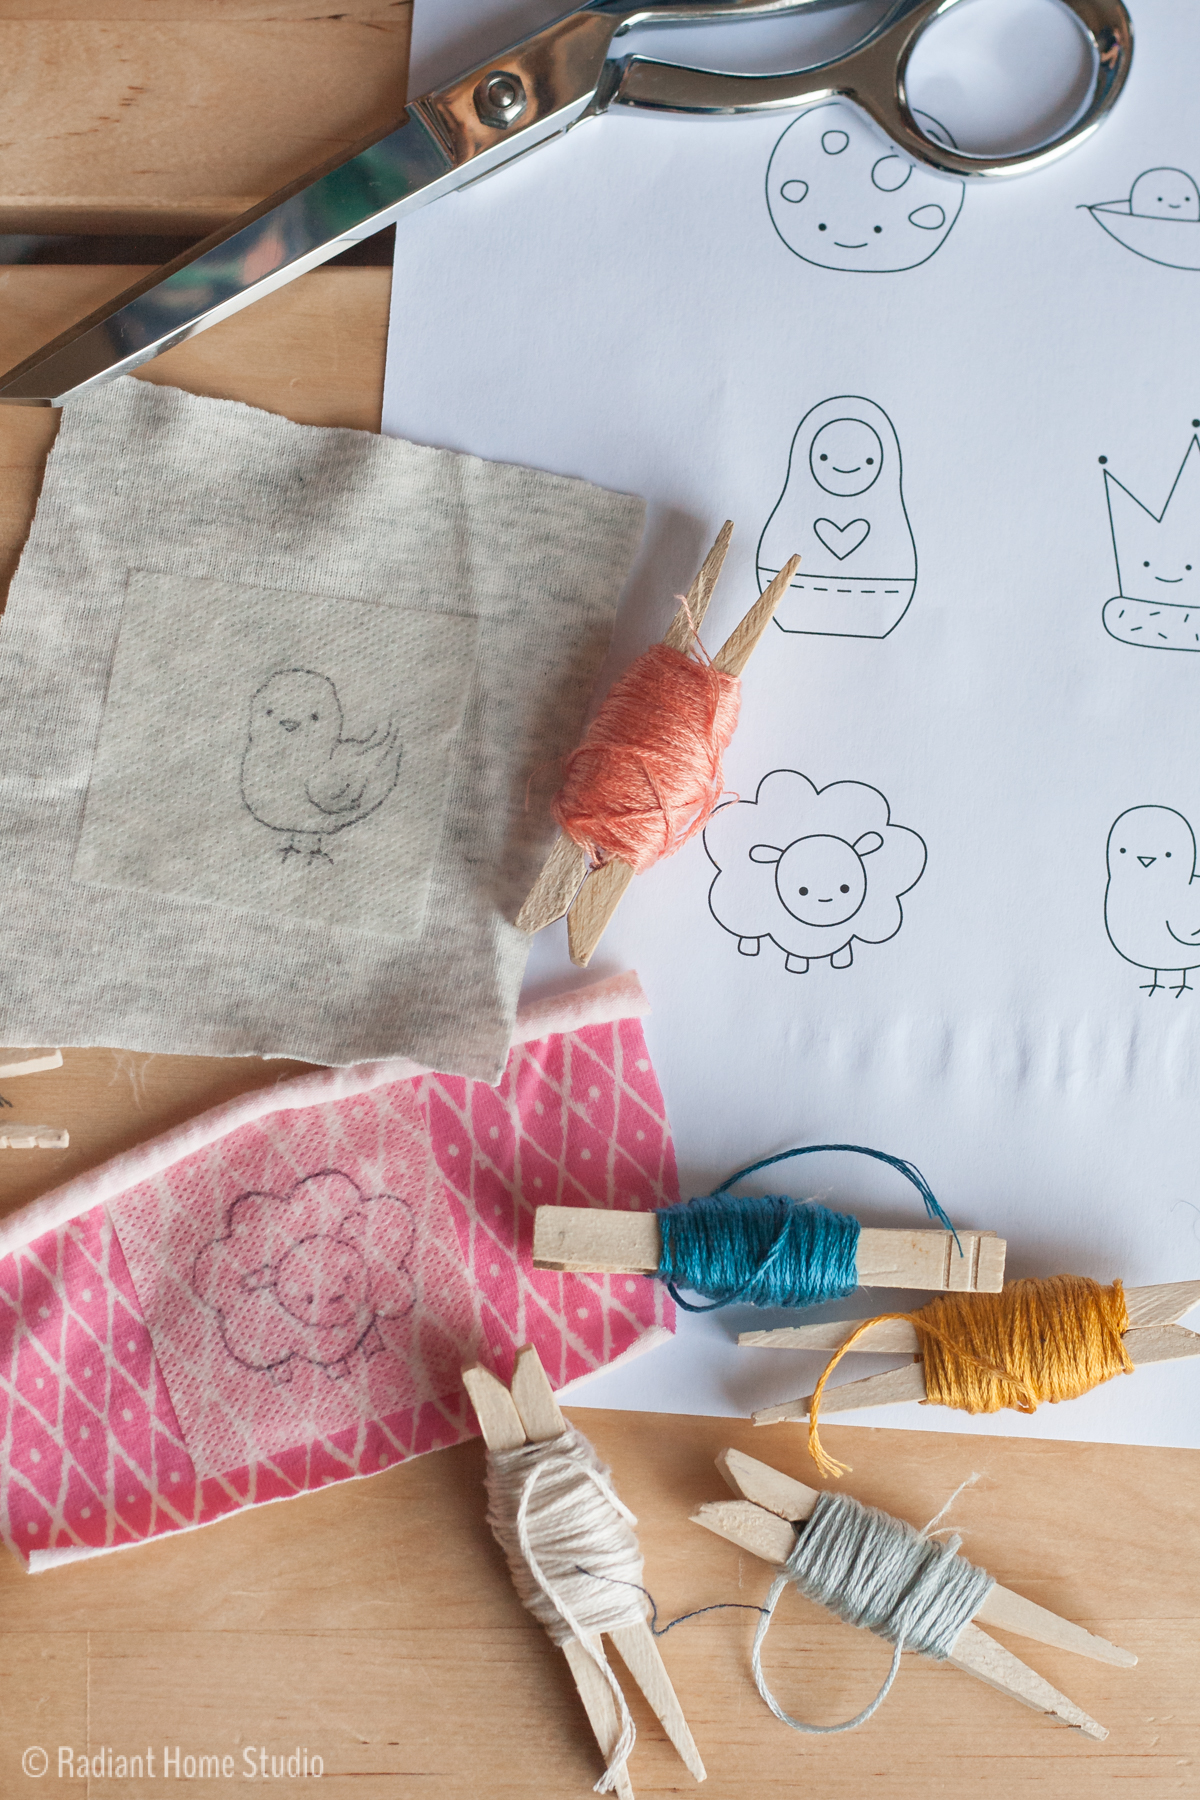 Make an Embroidered Baby Onesie as a Gift | Radiant Home Studio